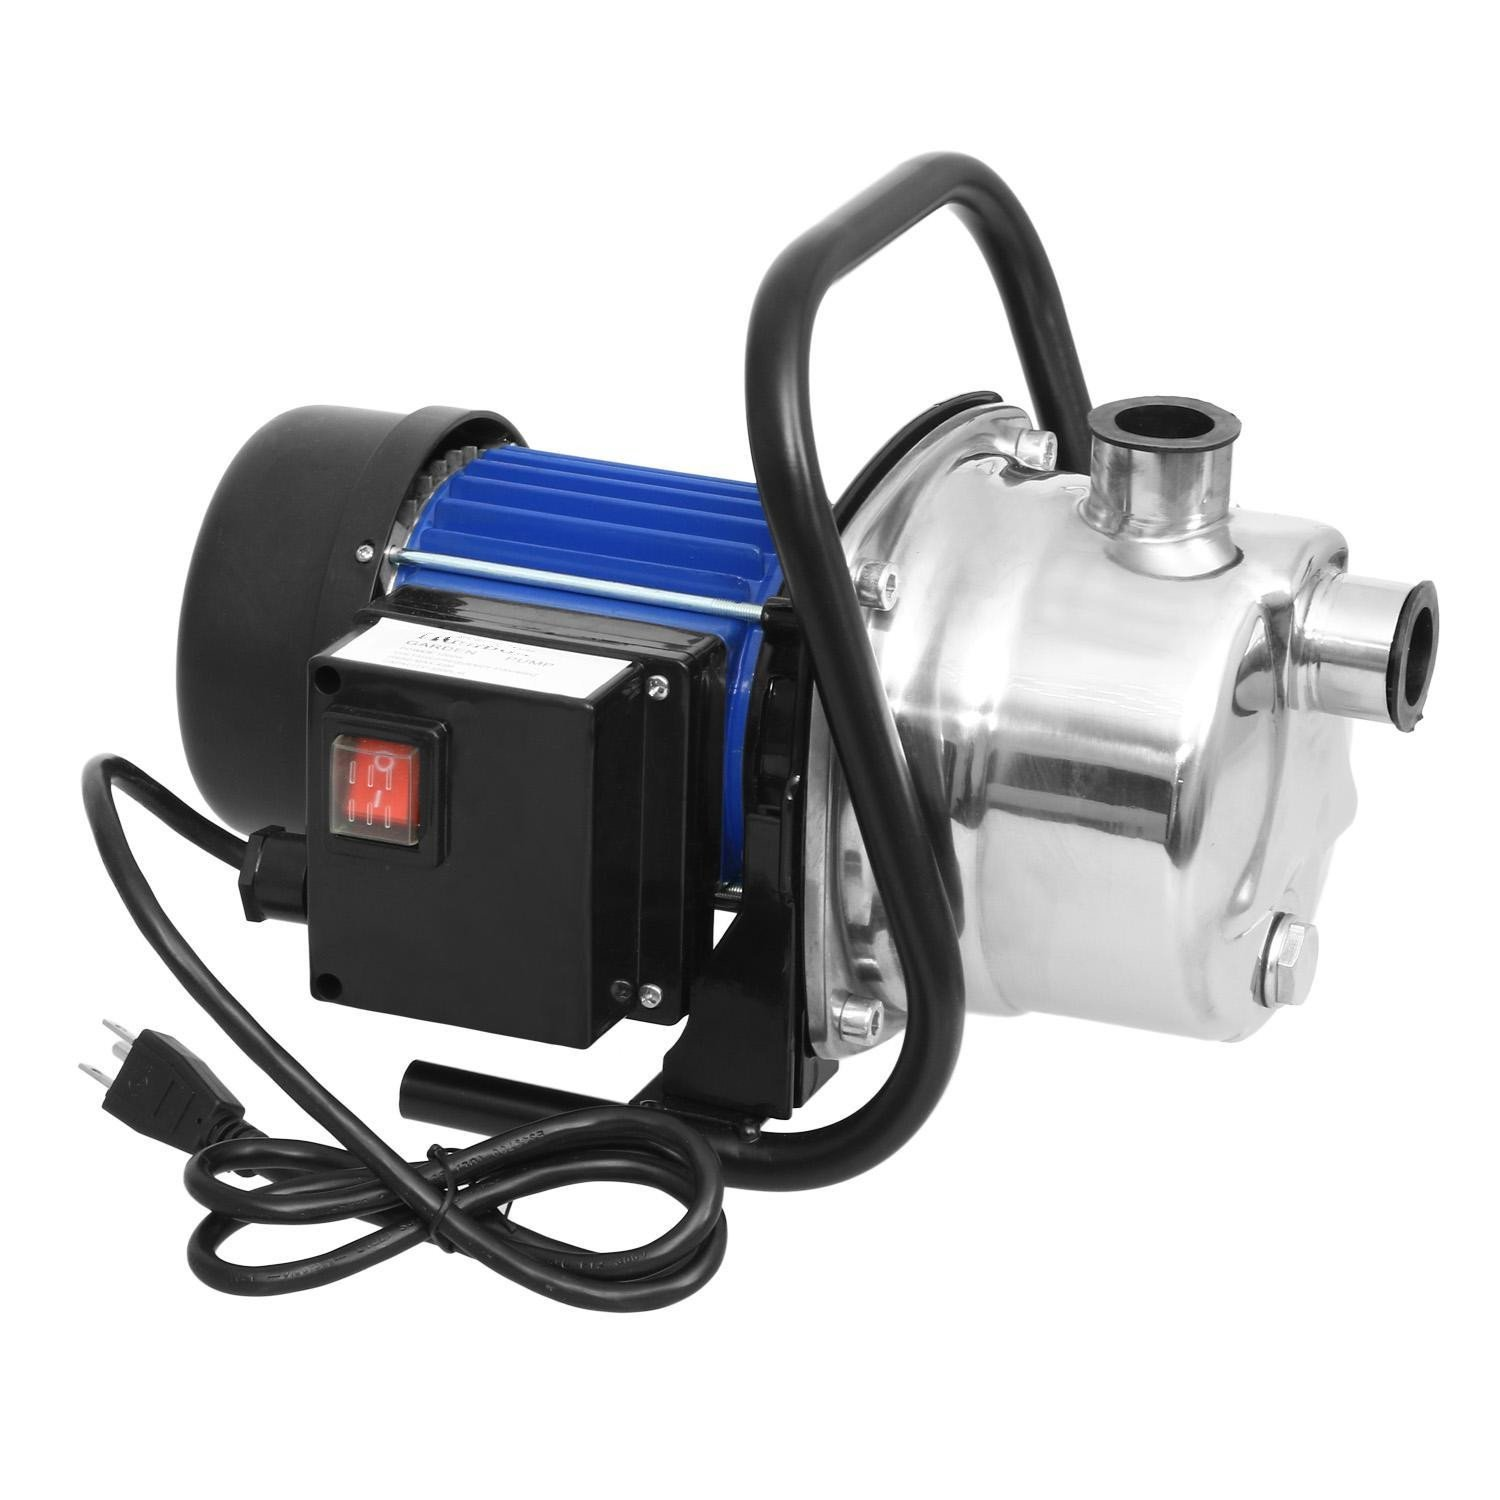 Lantusi 1.6HP Portable Stainless Steel Lawn Sprinkling Pump, High Capacity Home Garden Irrigation Water Supply Pump, Booster Pump Shallow Well Pump (US STOCK)